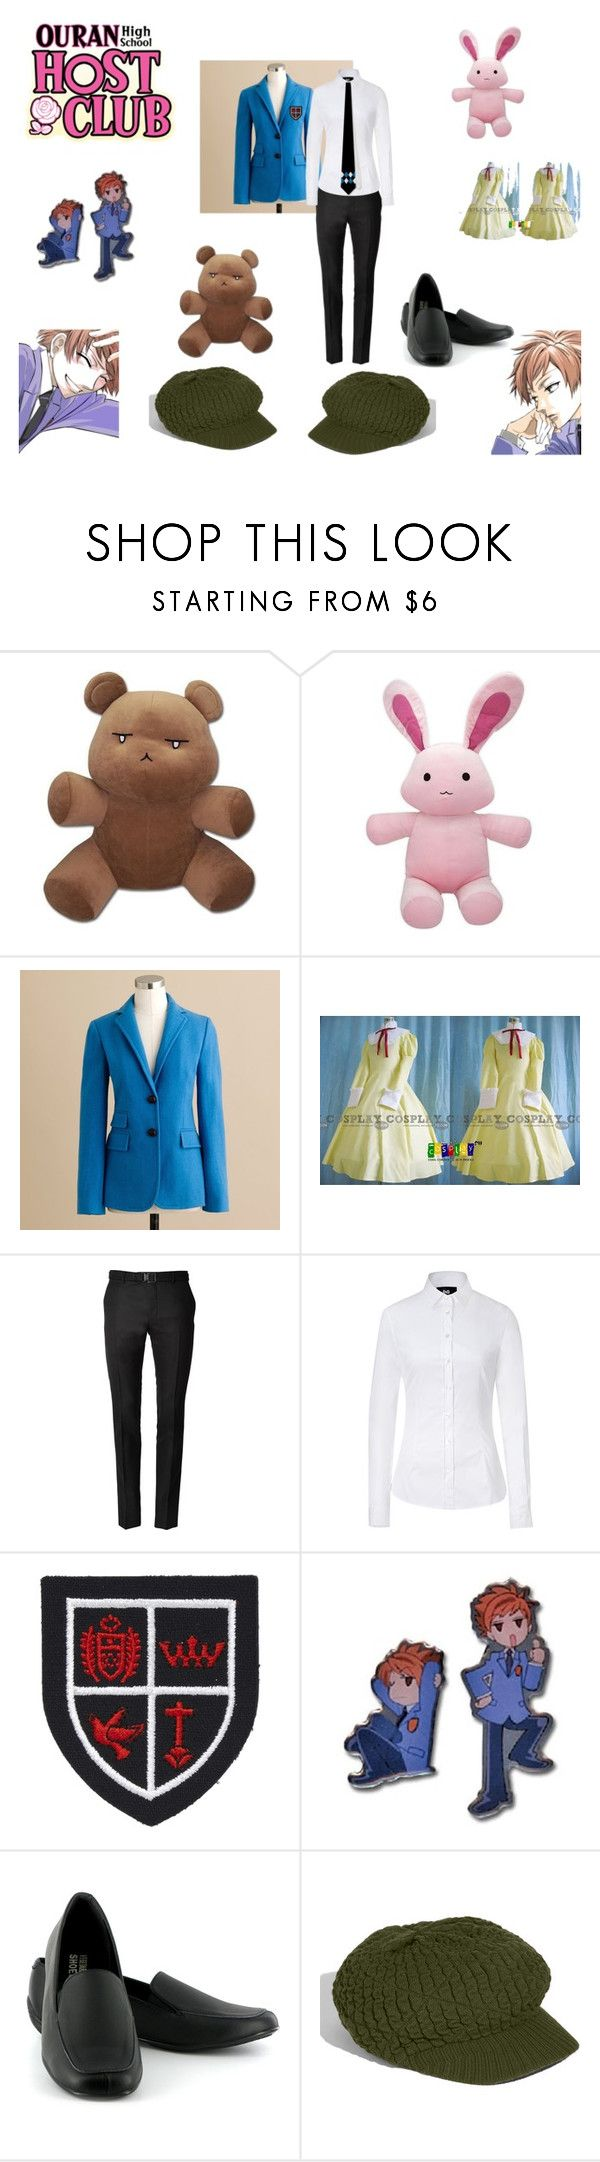 """""""Ouran High school Host Club"""" by ellebently ❤ liked on Polyvore featuring J.Crew, Yves Saint Laurent, D&G, Clapham, Vegetarian Shoes, Echo, usa-chan, square toe, baby blue and ouran"""